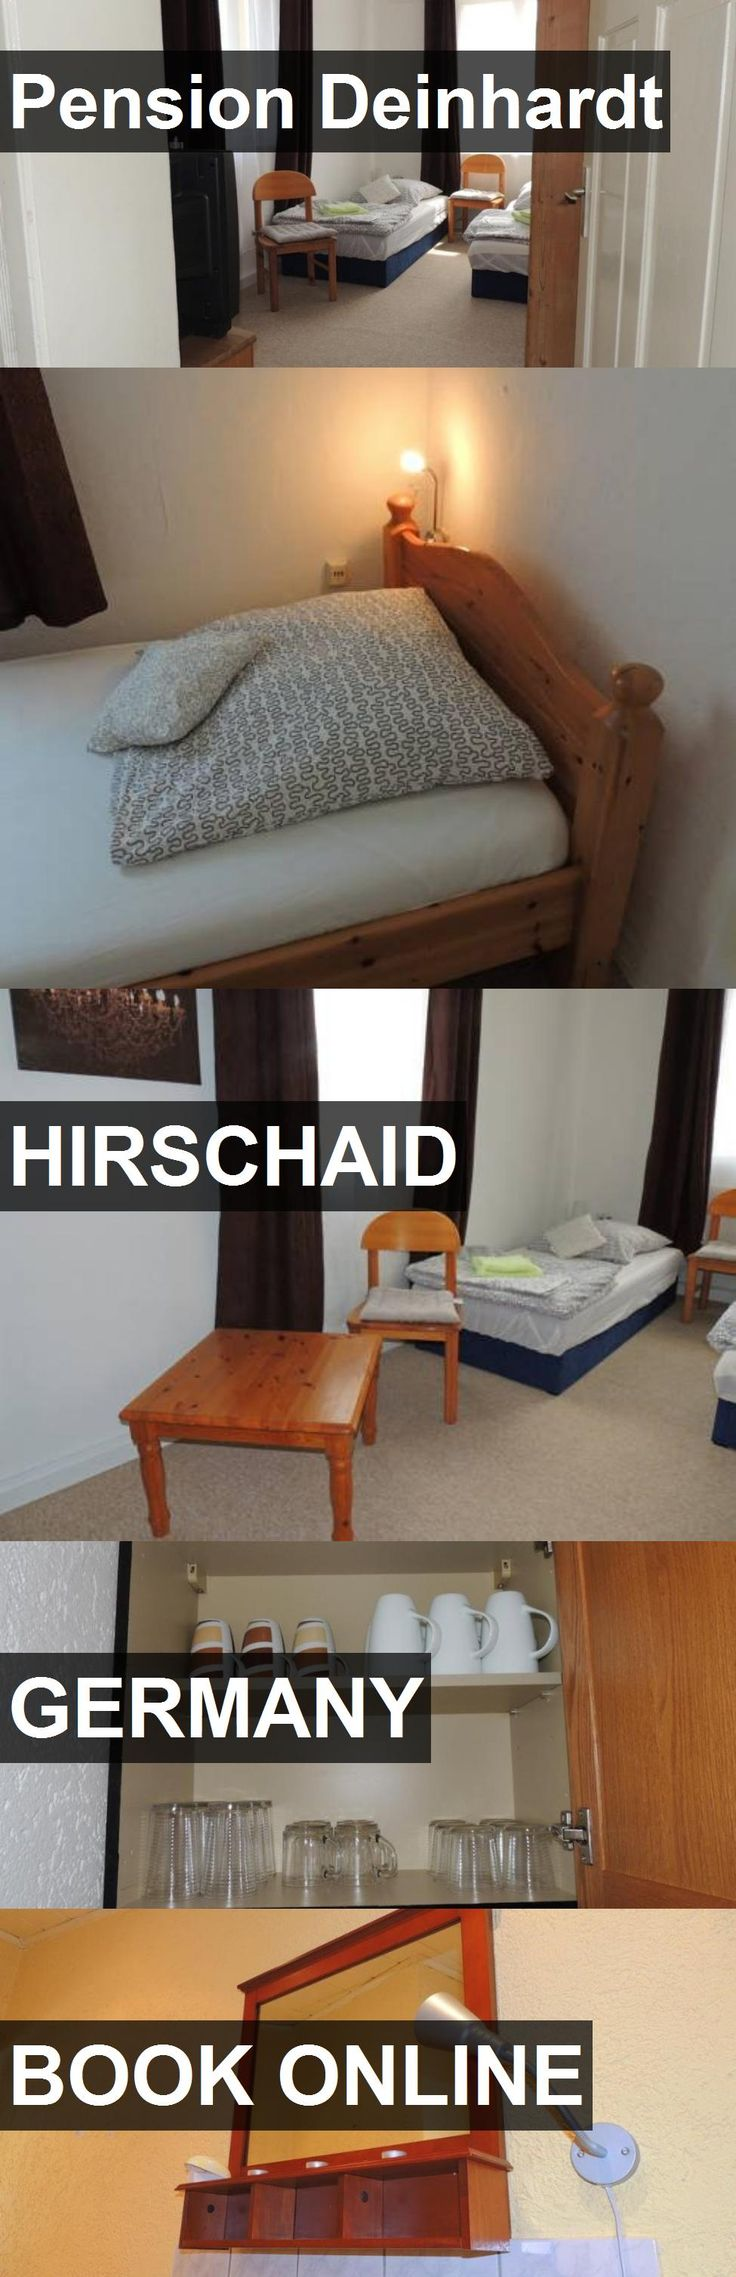 Hotel Pension Deinhardt in Hirschaid, Germany. For more information, photos, reviews and best prices please follow the link. #Germany #Hirschaid #hotel #travel #vacation